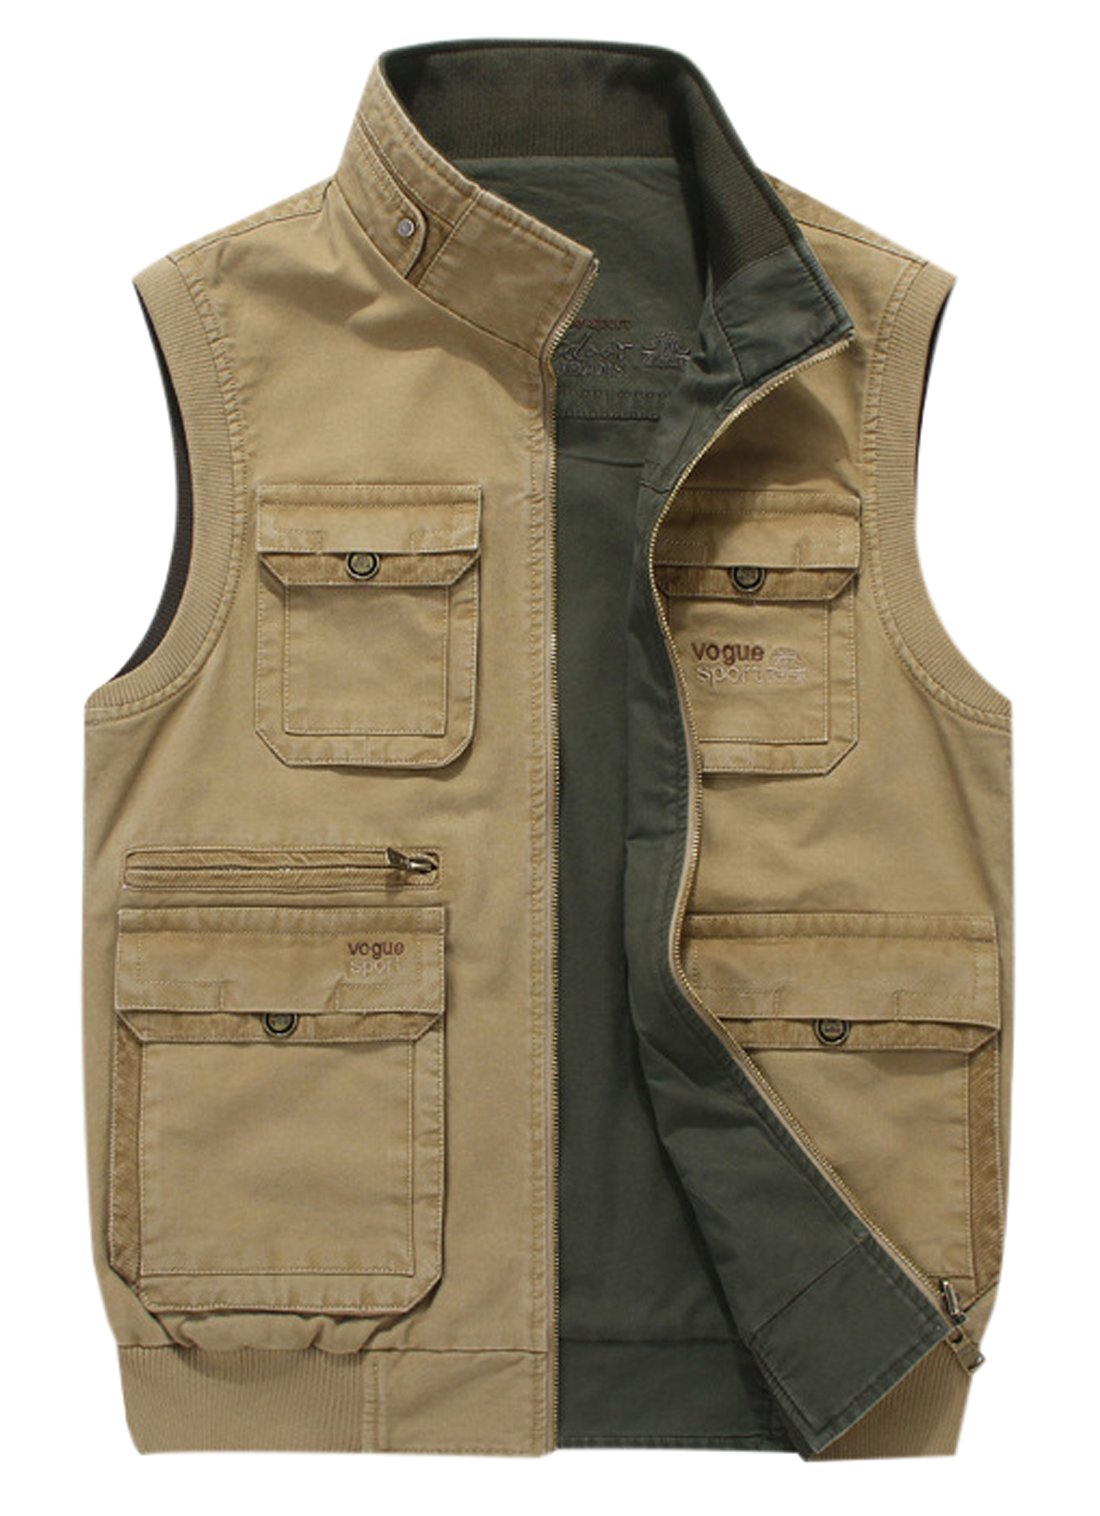 Gihuo Men's Reversible Cotton Leisure Outdoor Pockets Fish Photo Journalist Vest (L, Khaki) by Gihuo